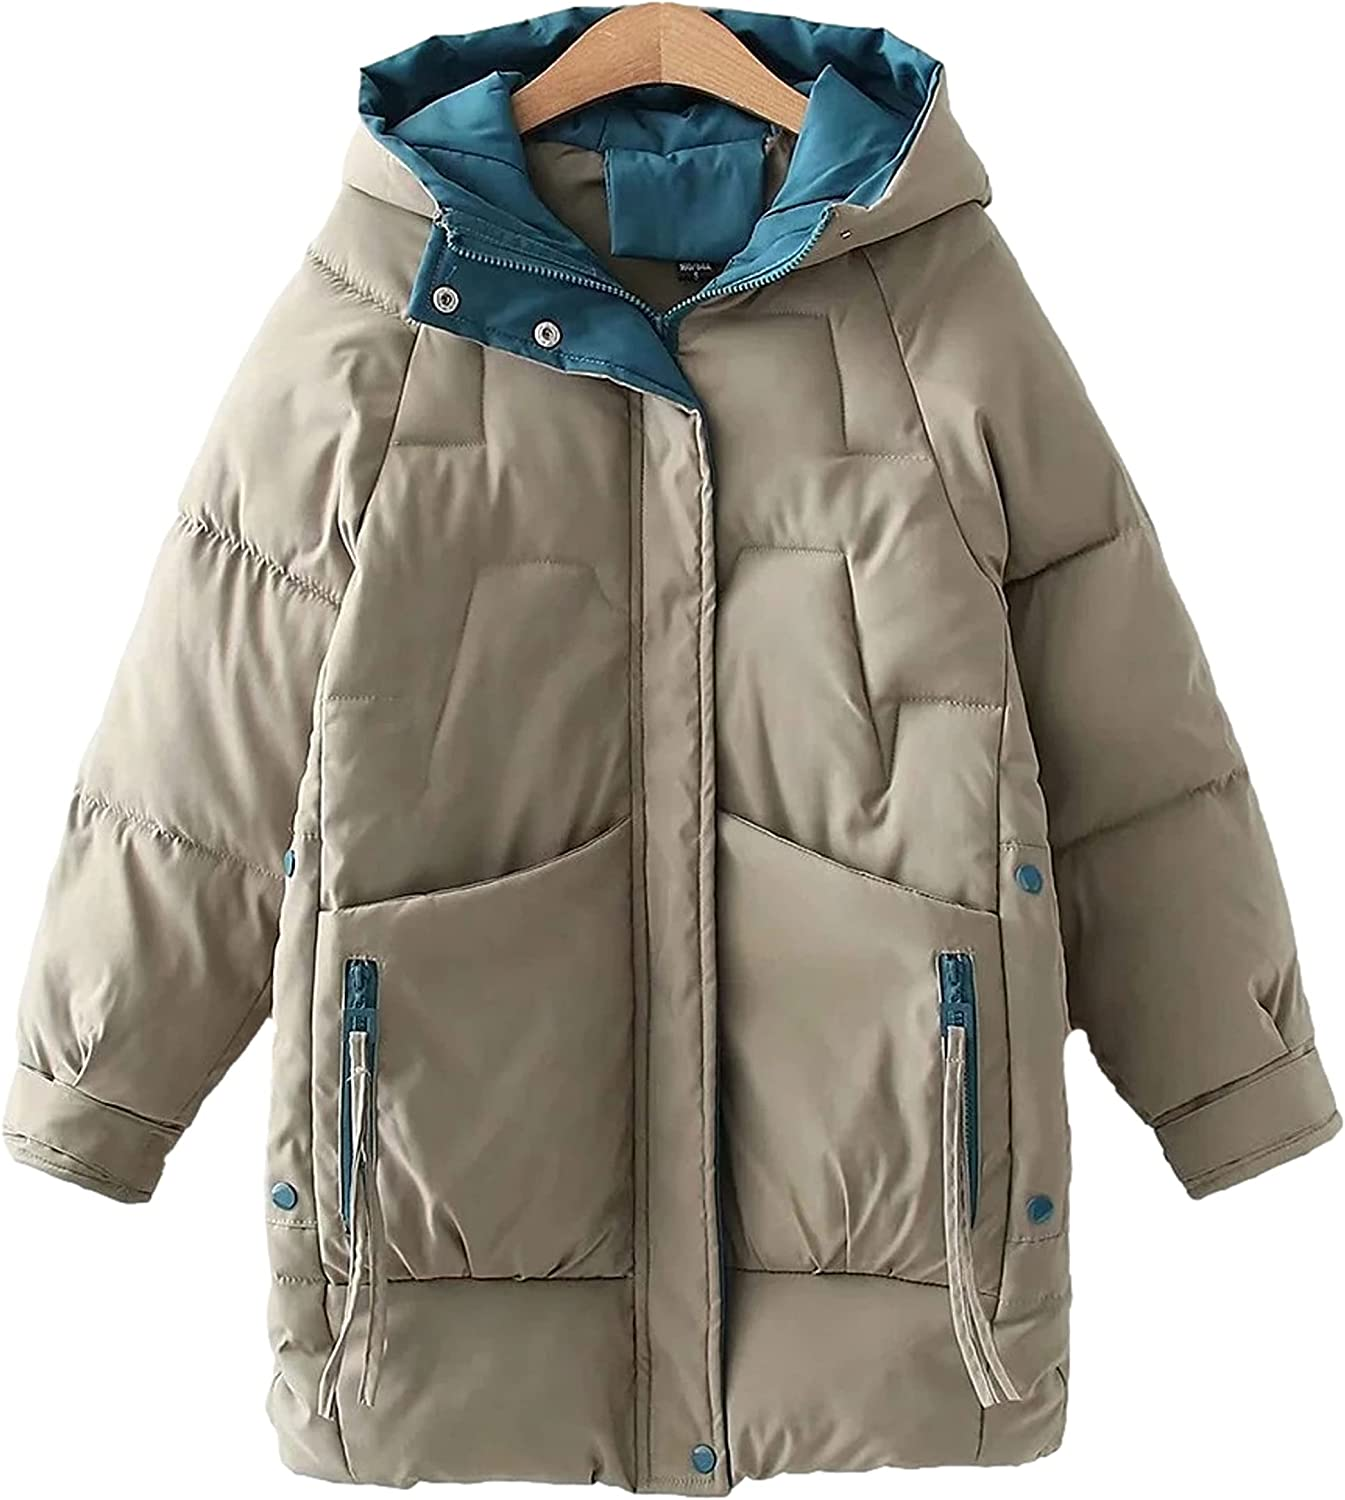 HangNiFang Womens Winter Warm Quilted Cotton Jacket Zip Up Padded Thicken Puffer Hooded Coat